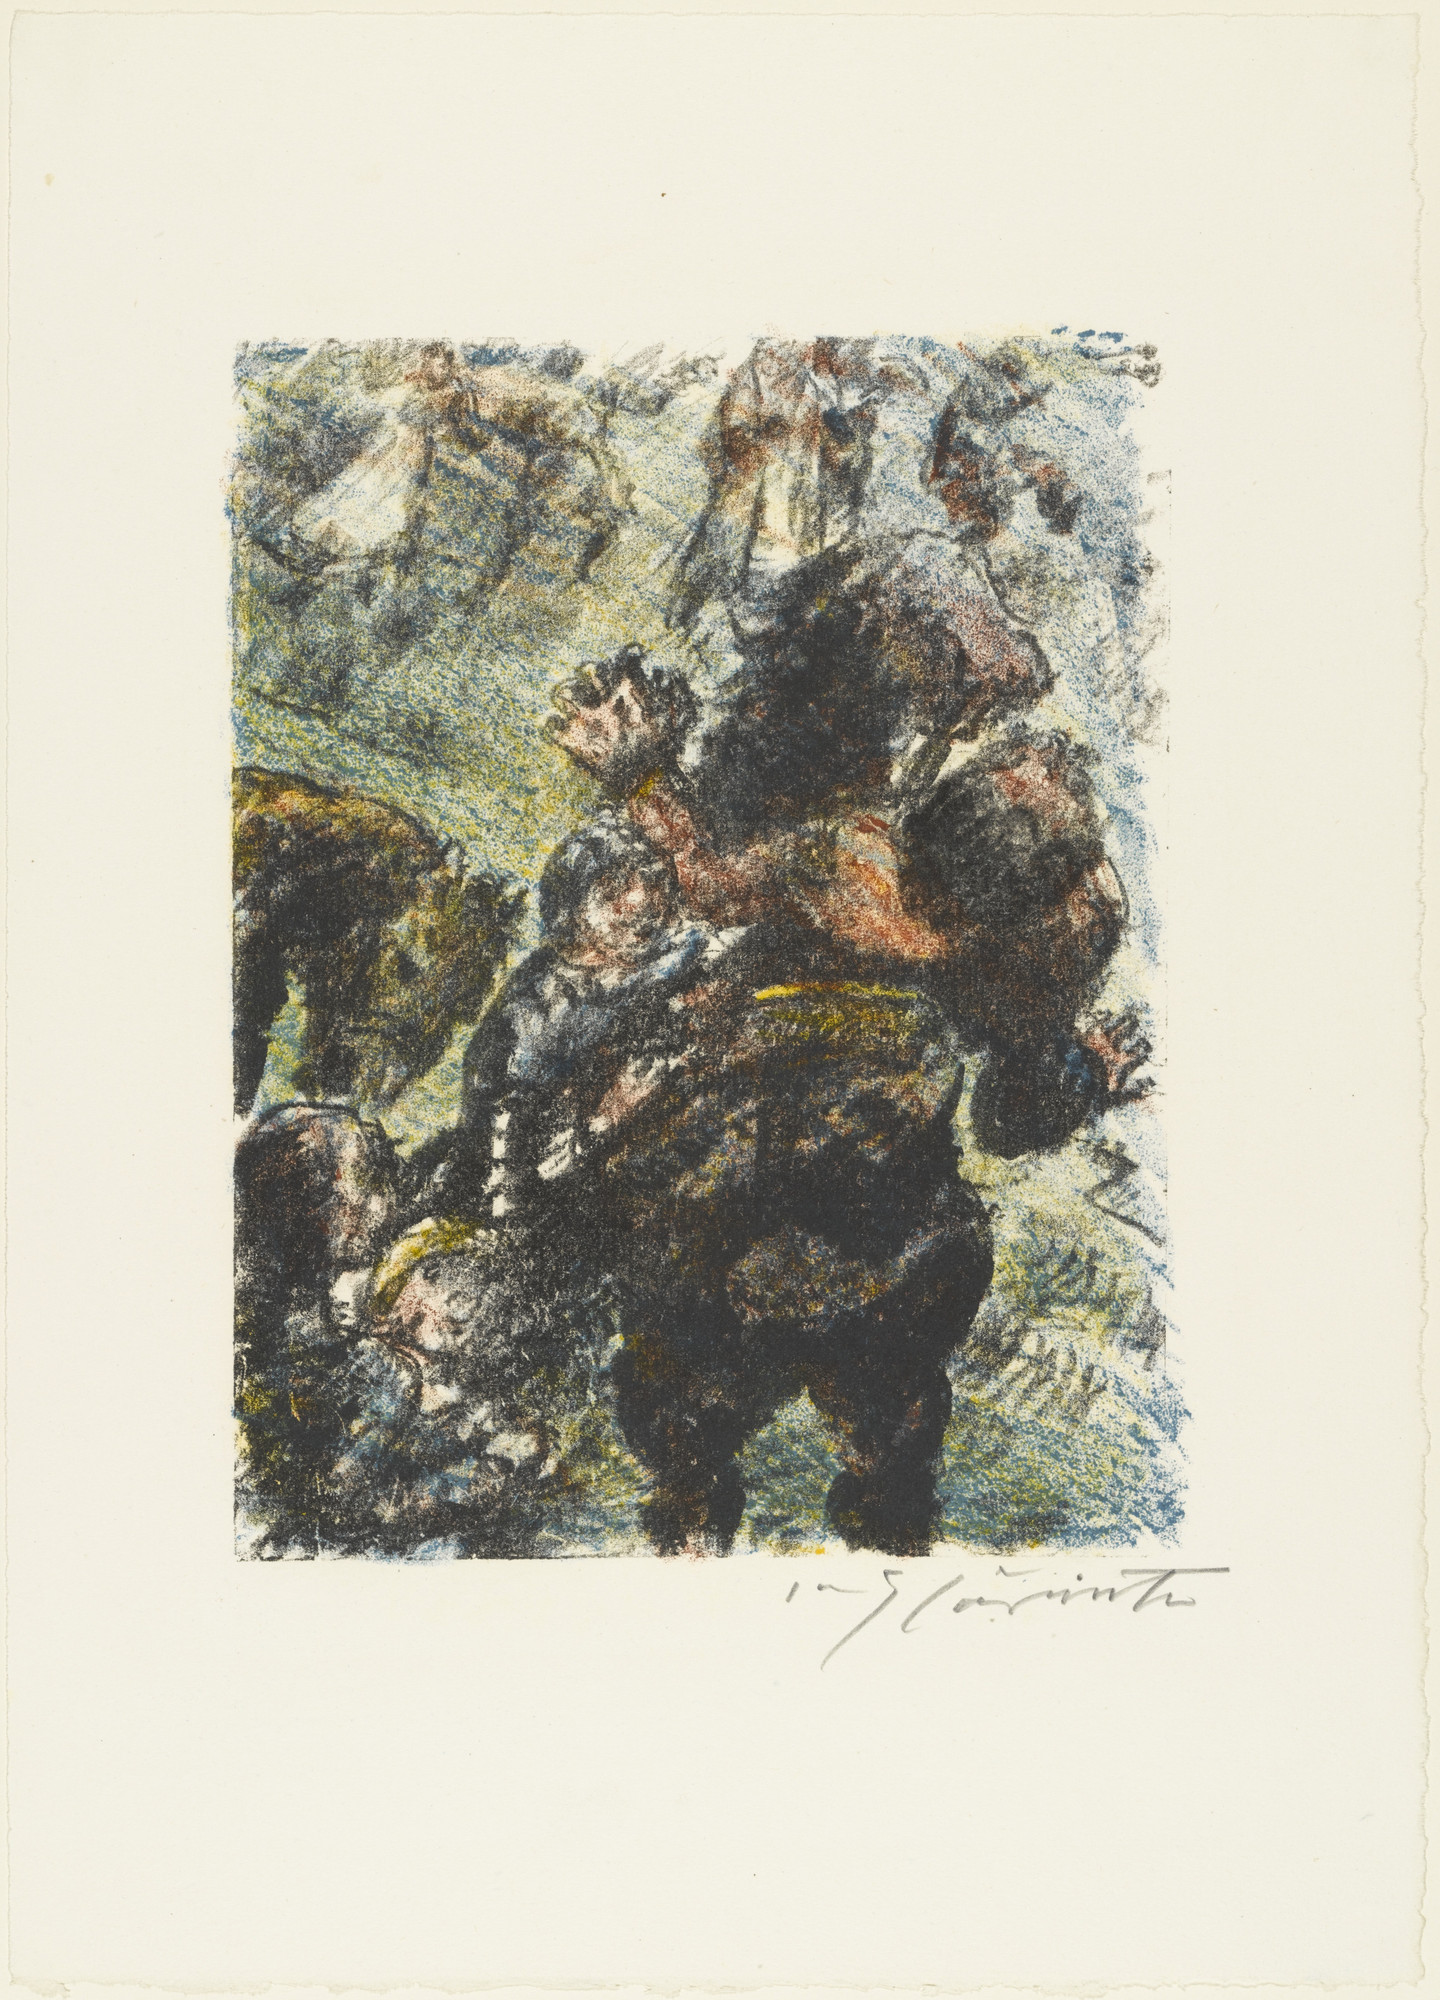 Lovis Corinth. Gessler's Death (Gesslers Tod) from William Tell (Wilhelm Tell). (1923-24, published 1925)